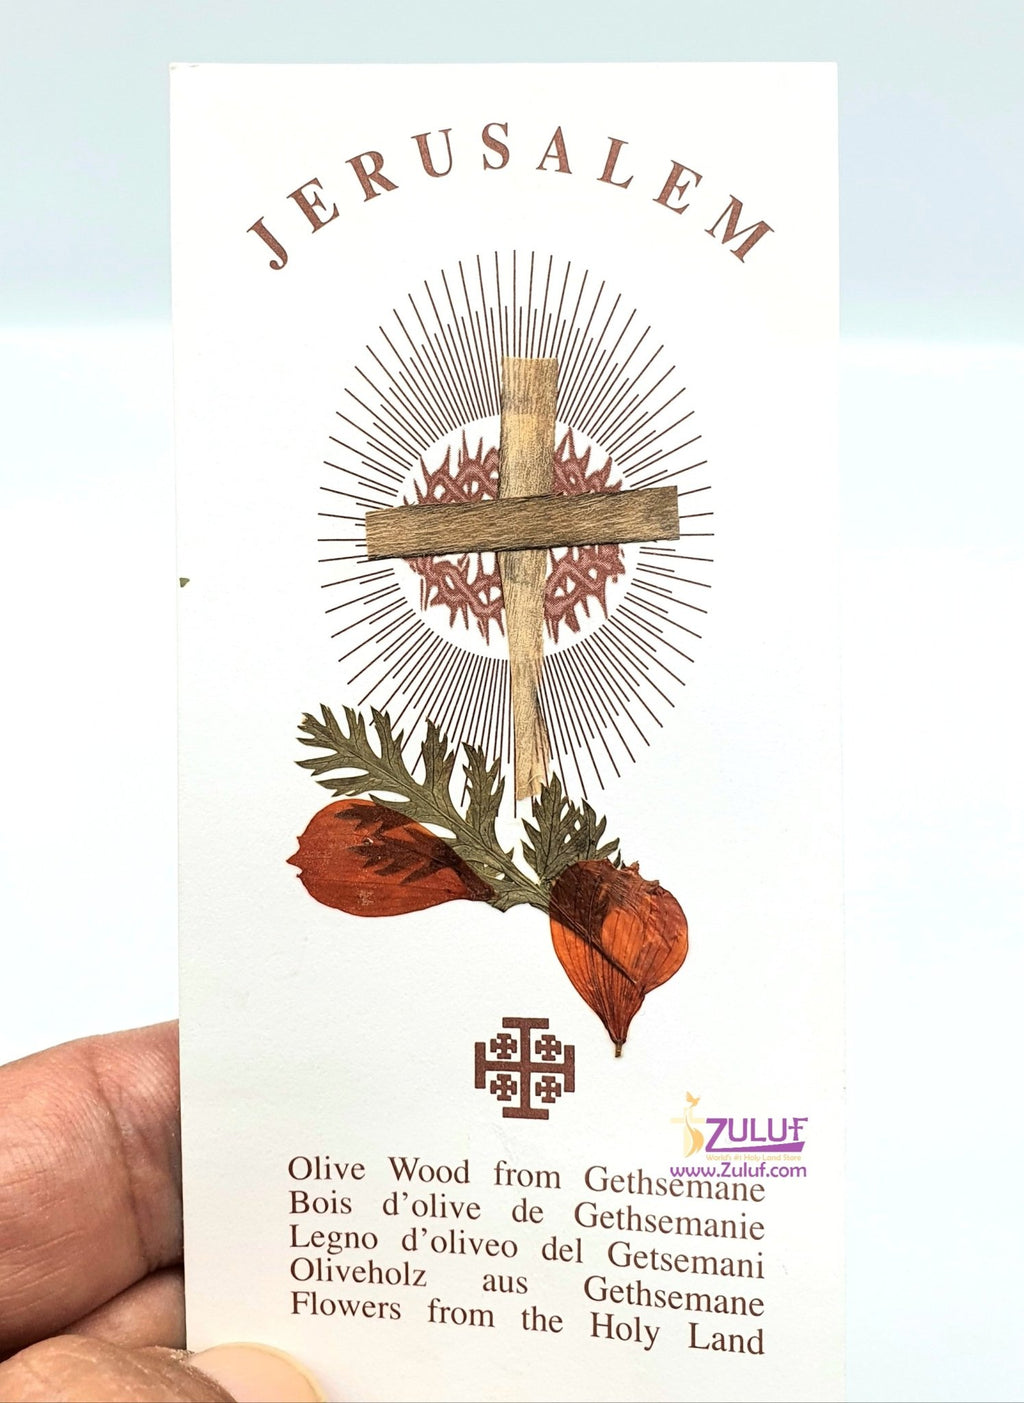 Olive Wood From Gethsemane Card Gift 12X6CM/4.7X2.3in Zuluf® (HLG232) - Zuluf